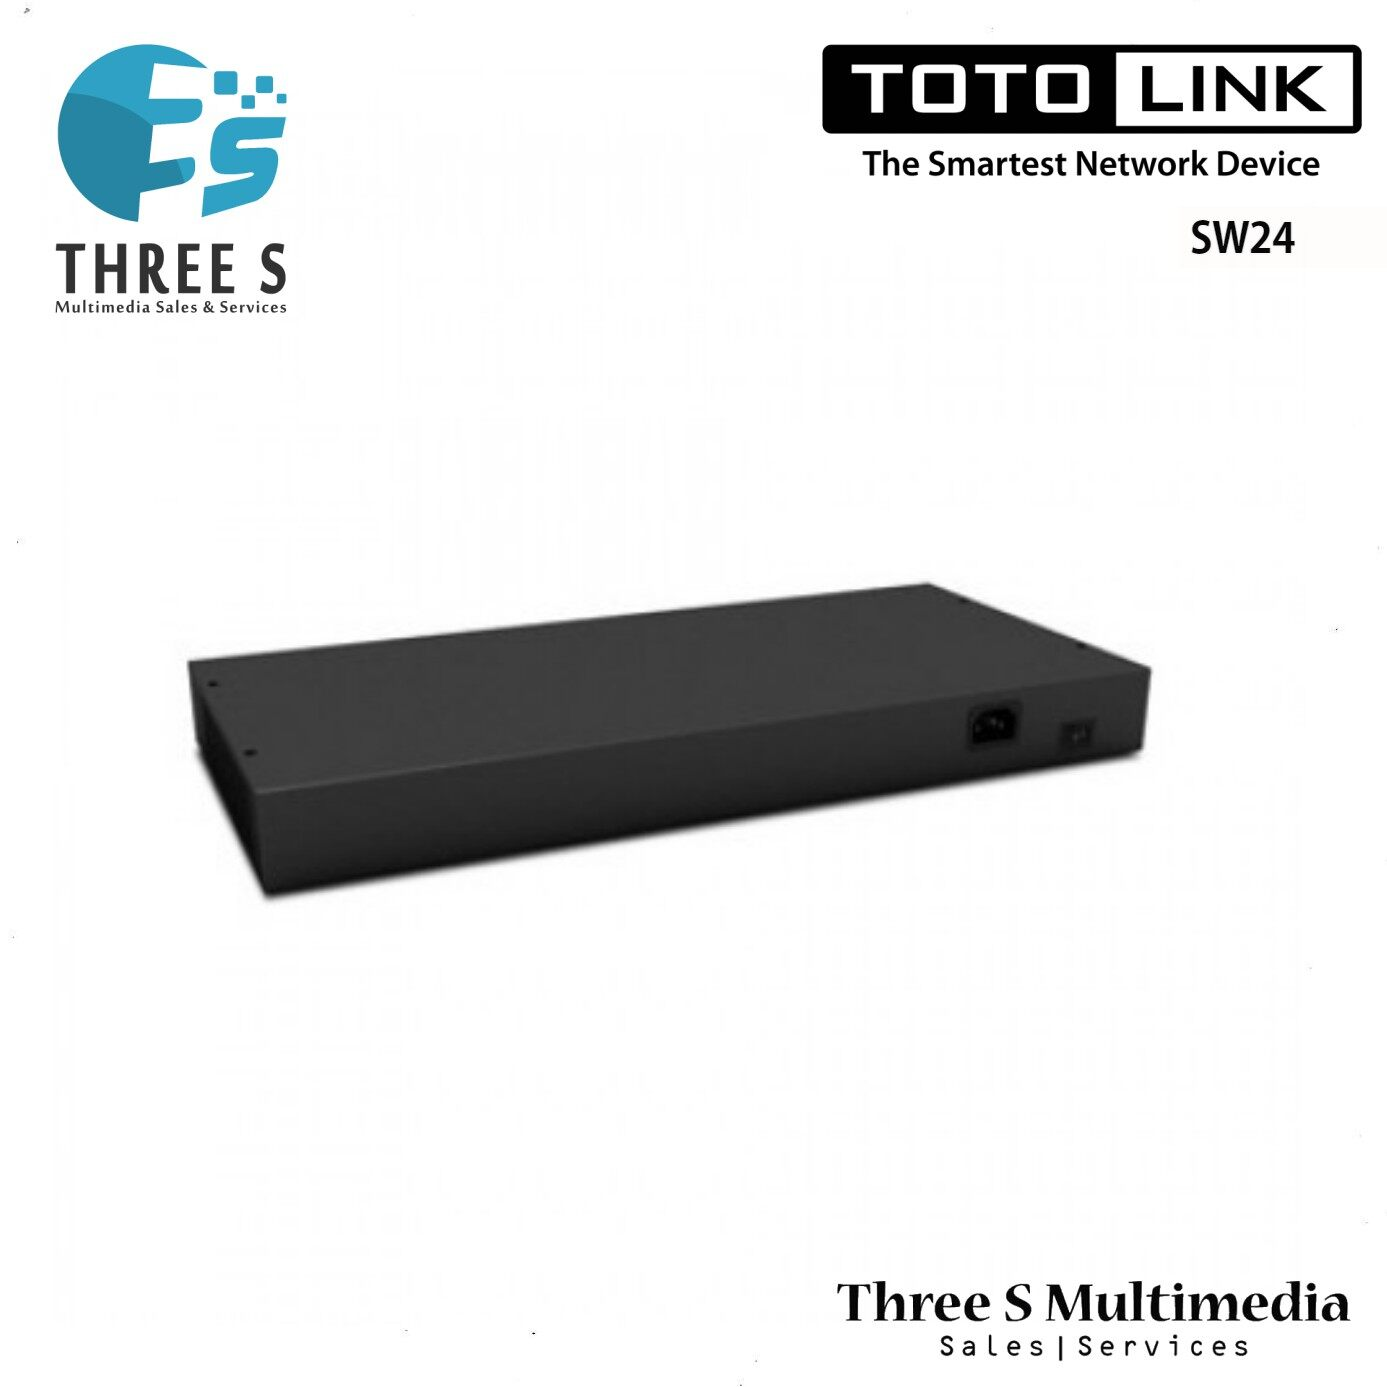 TOTO LINK 24-Port 10/100Mbps Unmanaged Switch SW24